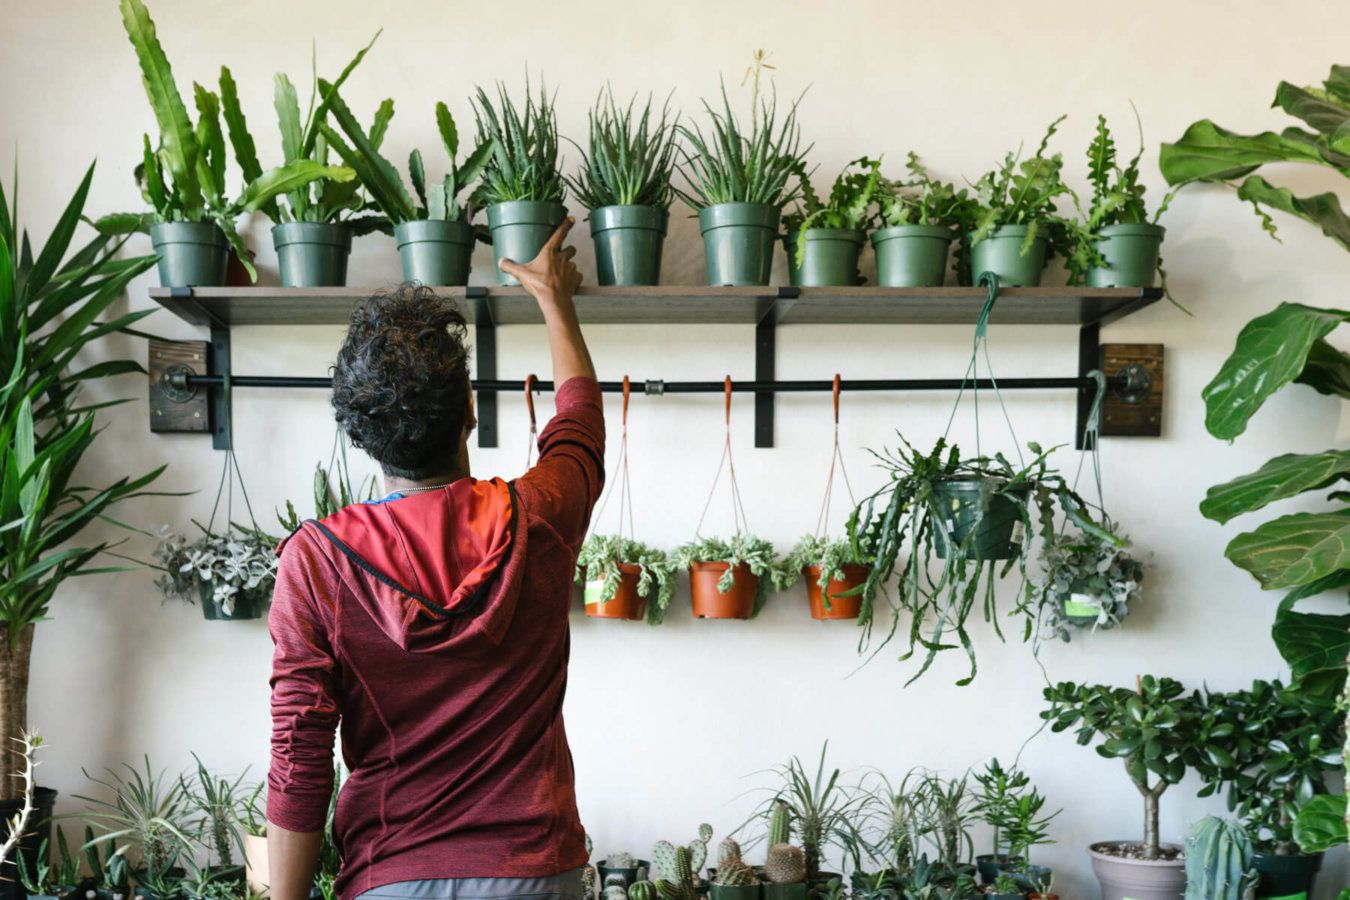 Man is photographed reaching for a plant on the shelf.